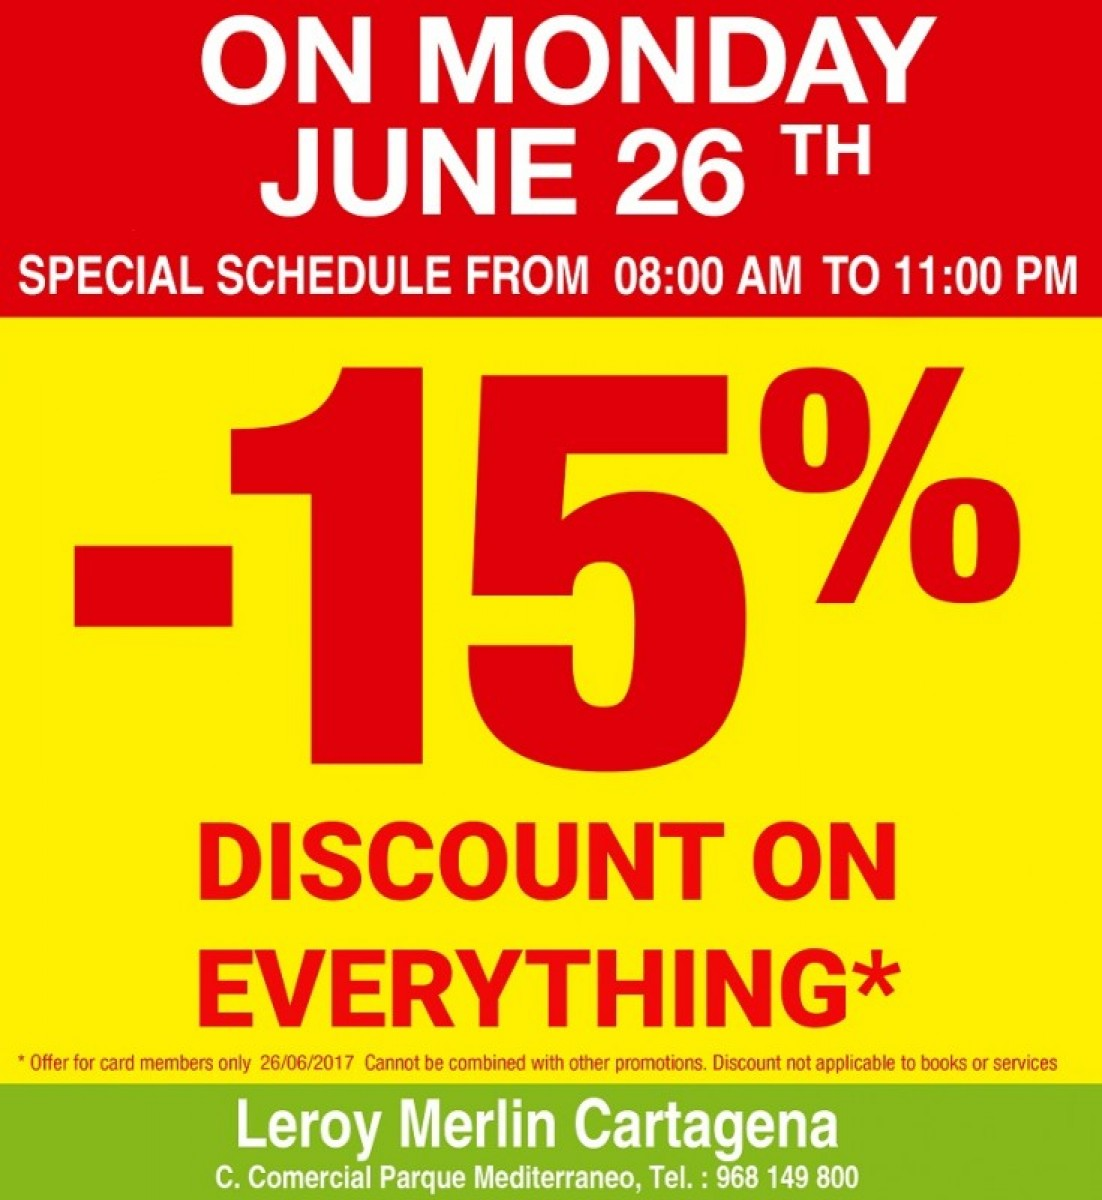 Get 15% off EVERYTHING at Leroy Merlin Cartagena on Monday 26th June